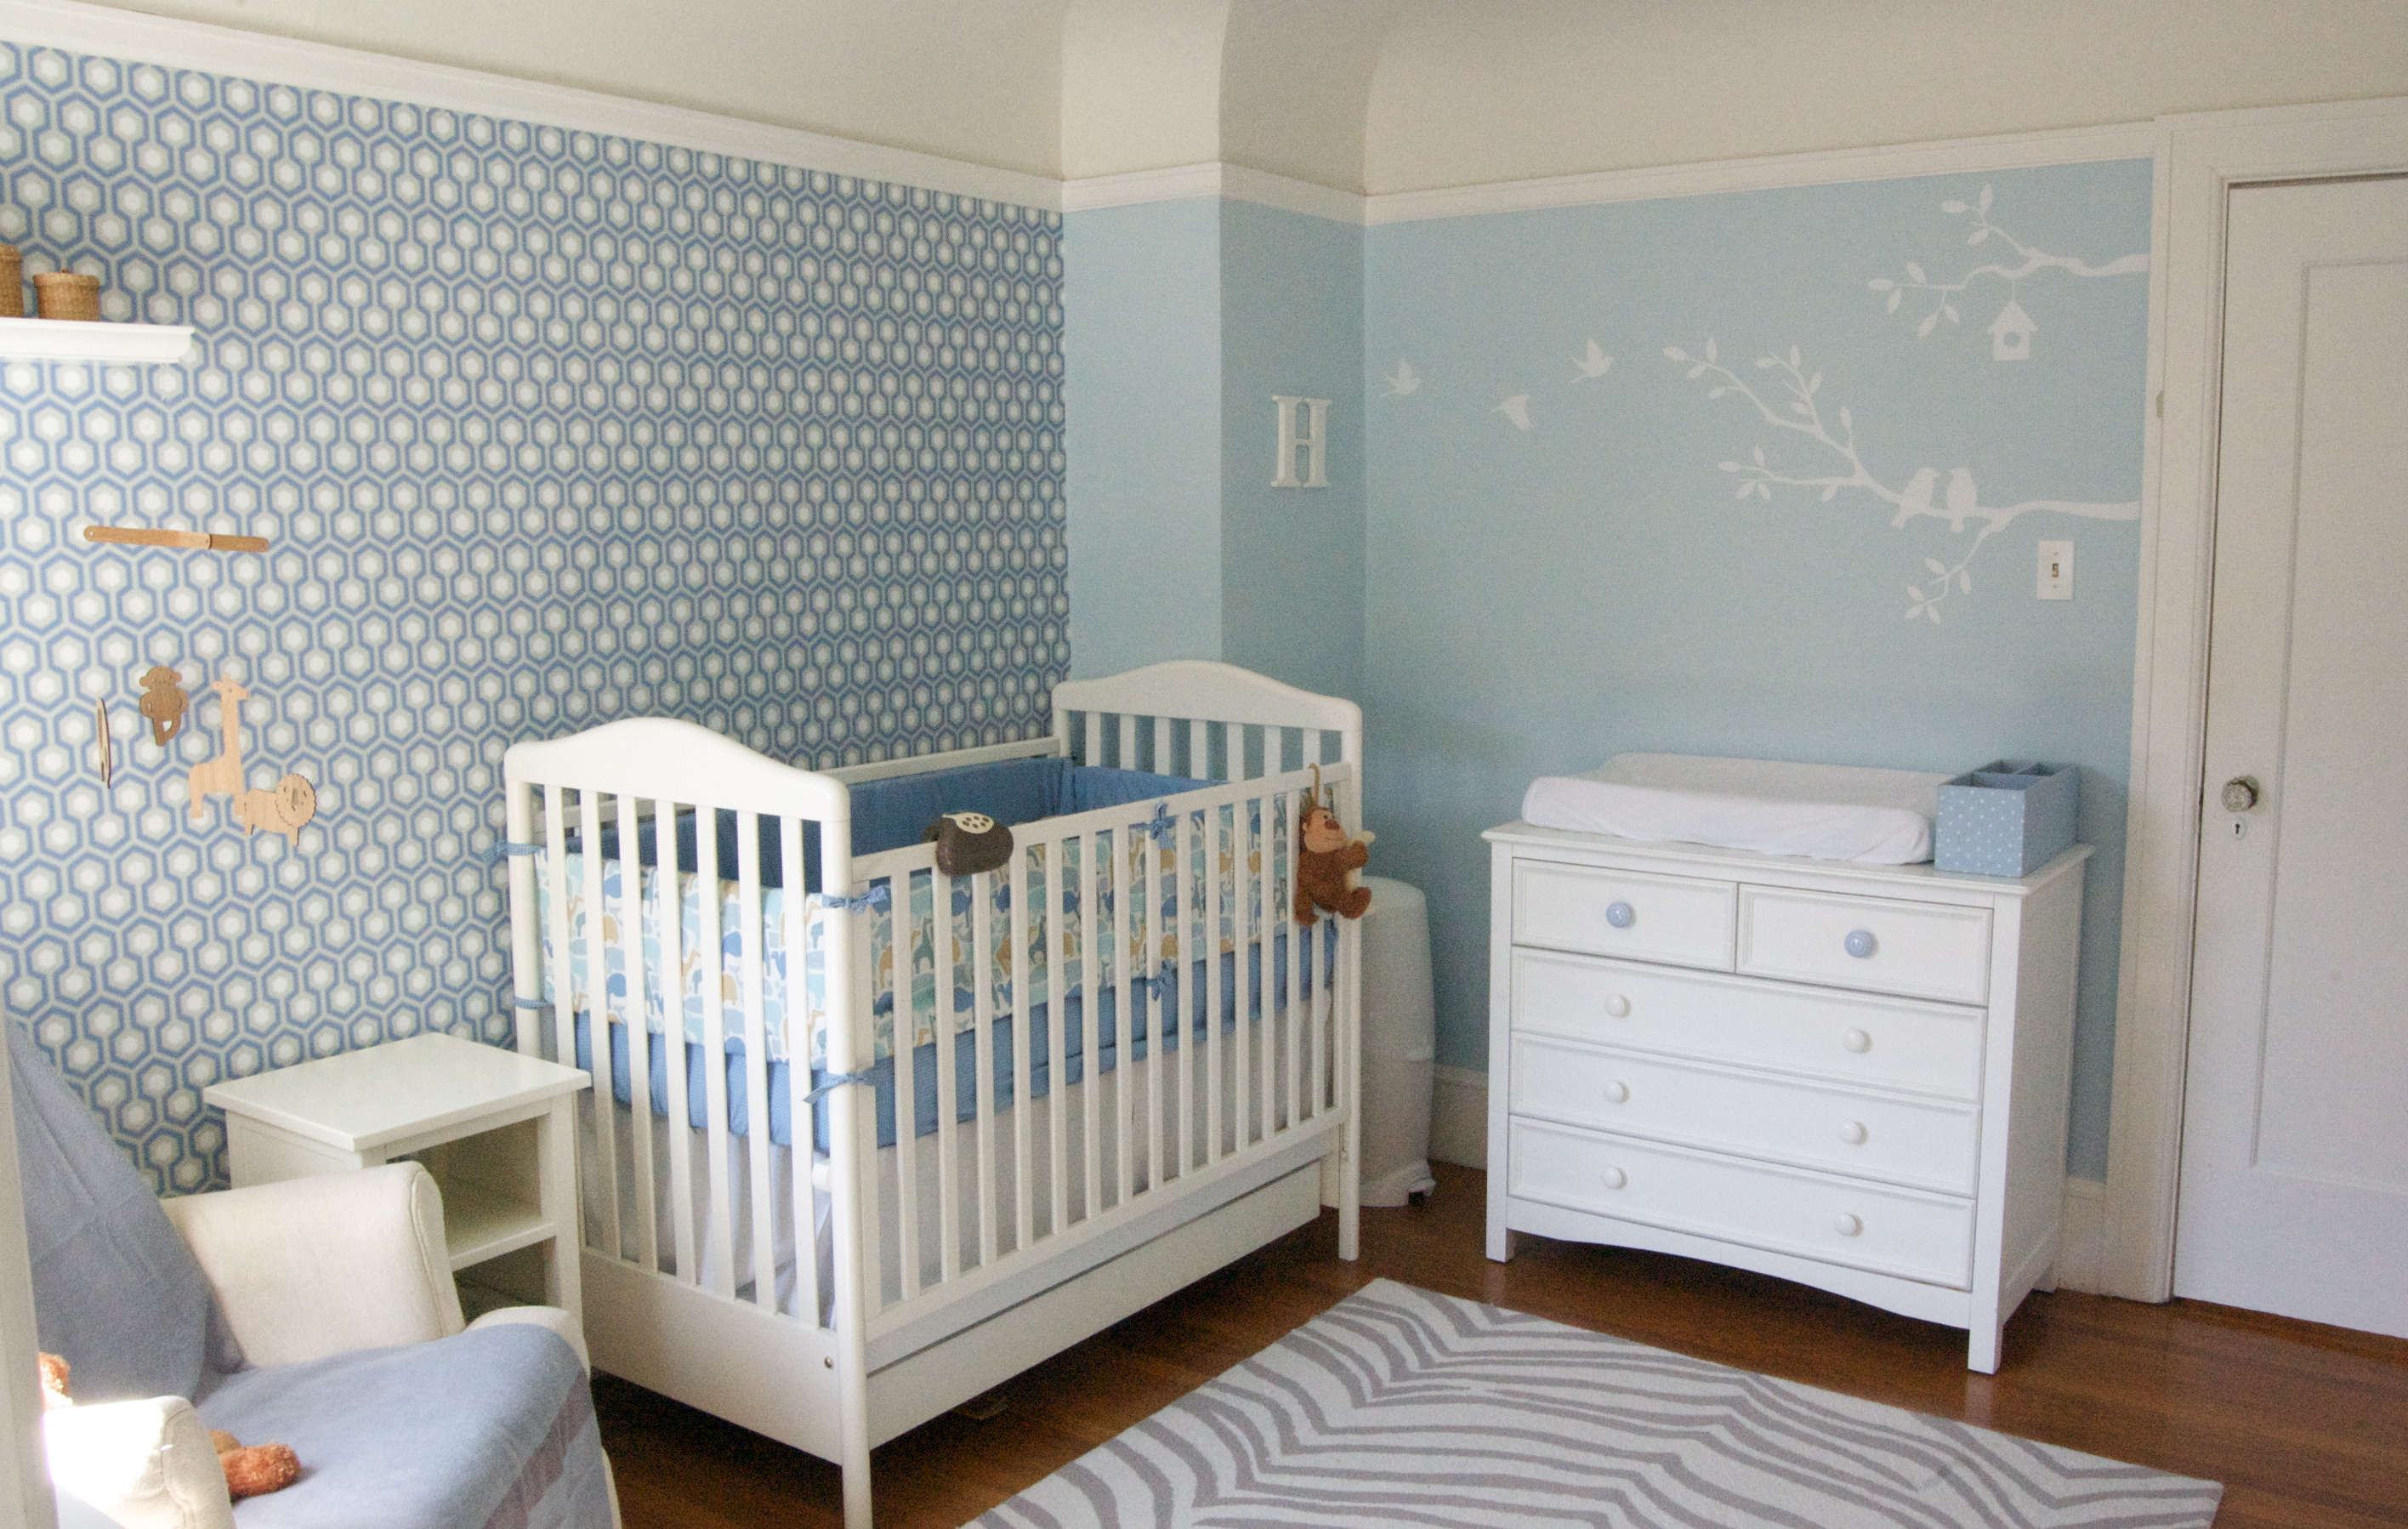 1000 images about baby room ideas on pinterest nurseries cribs and baby rooms - Baby rooms idees ...